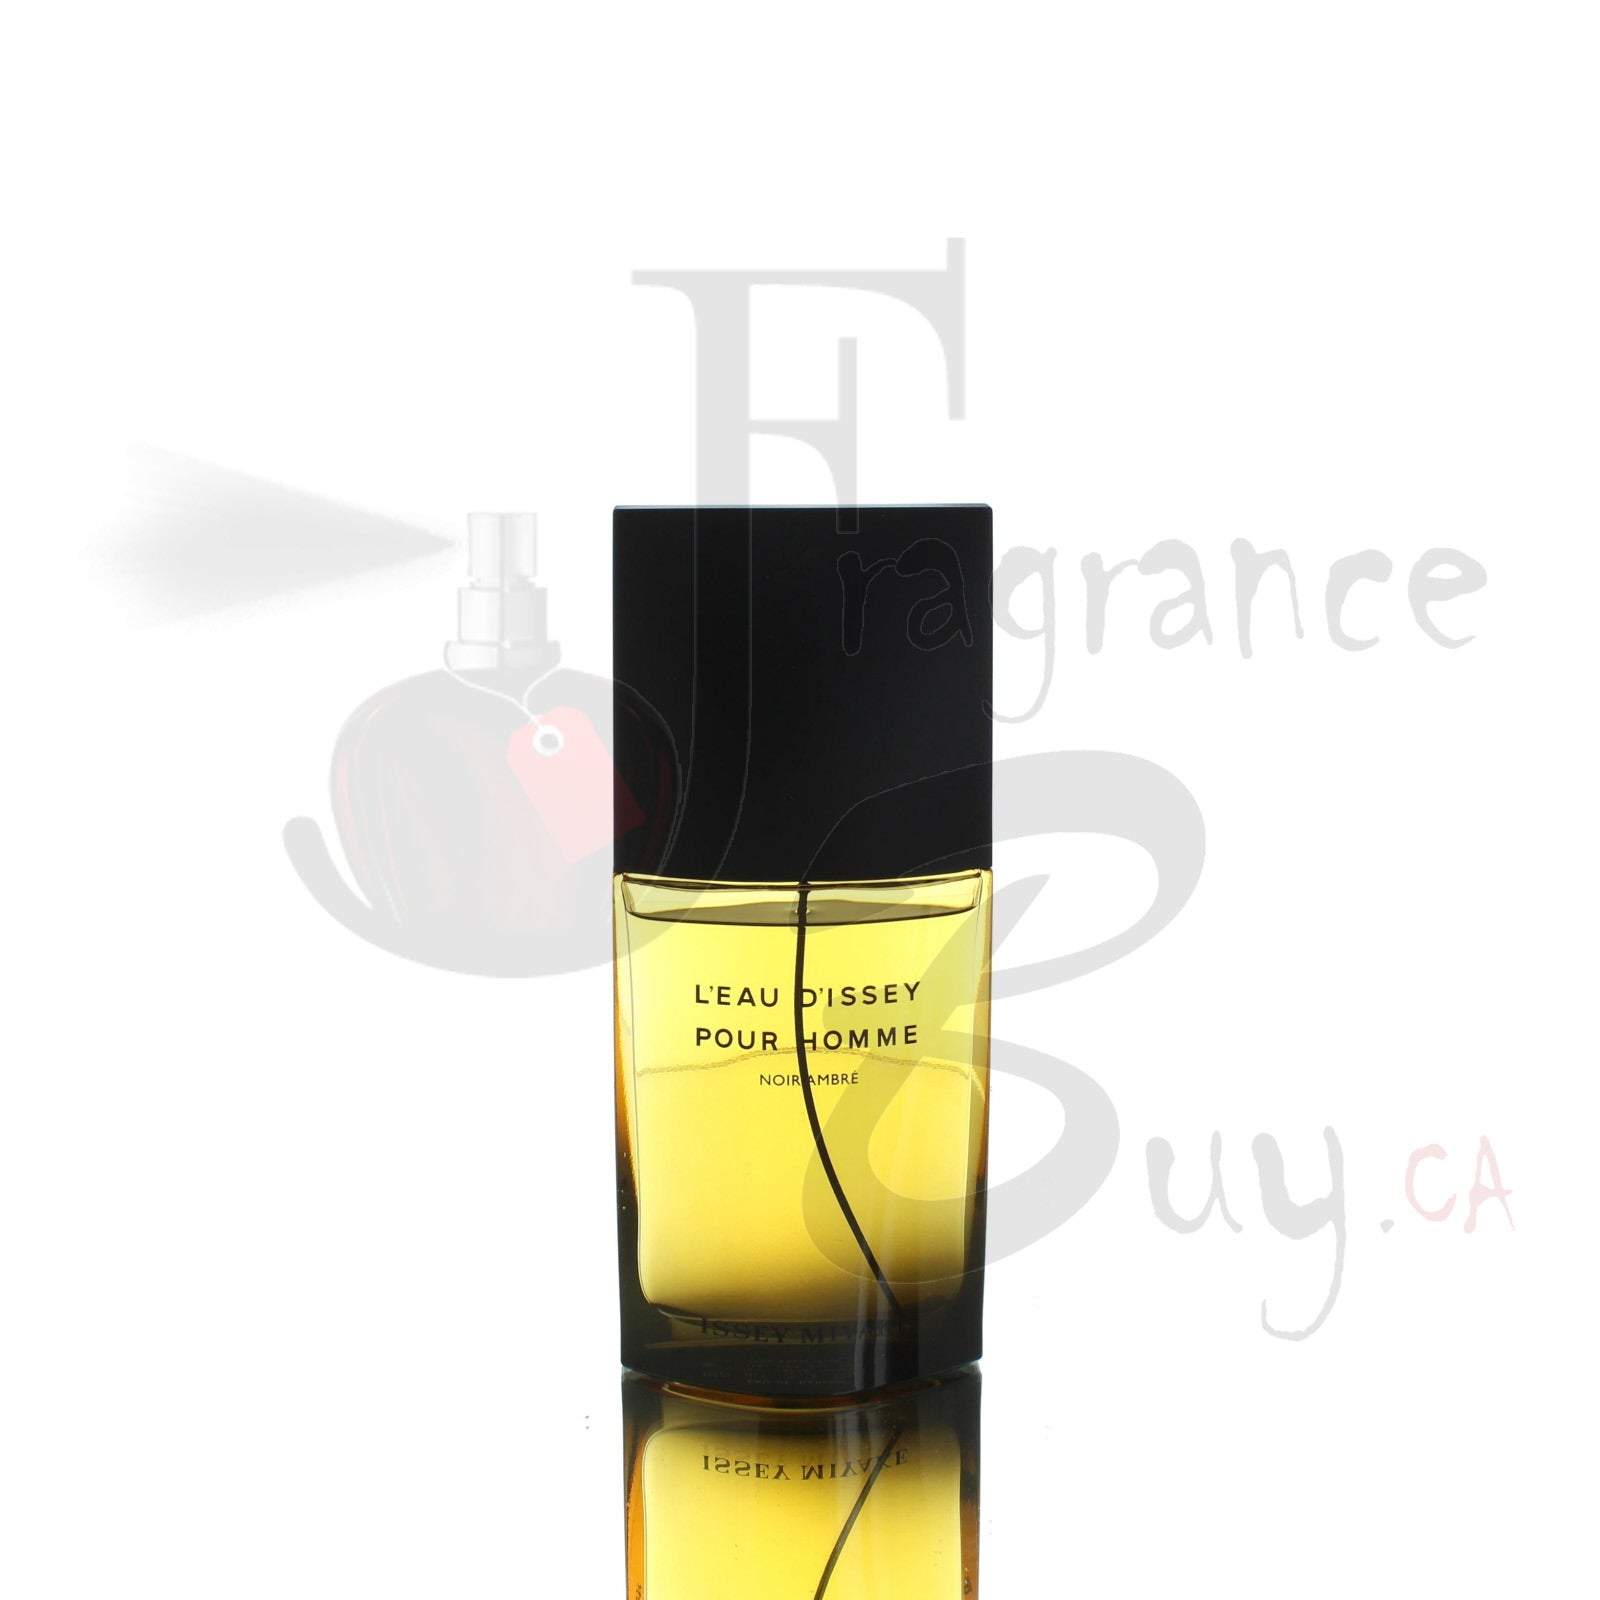 Issey Miyake Noir Ambre For Man